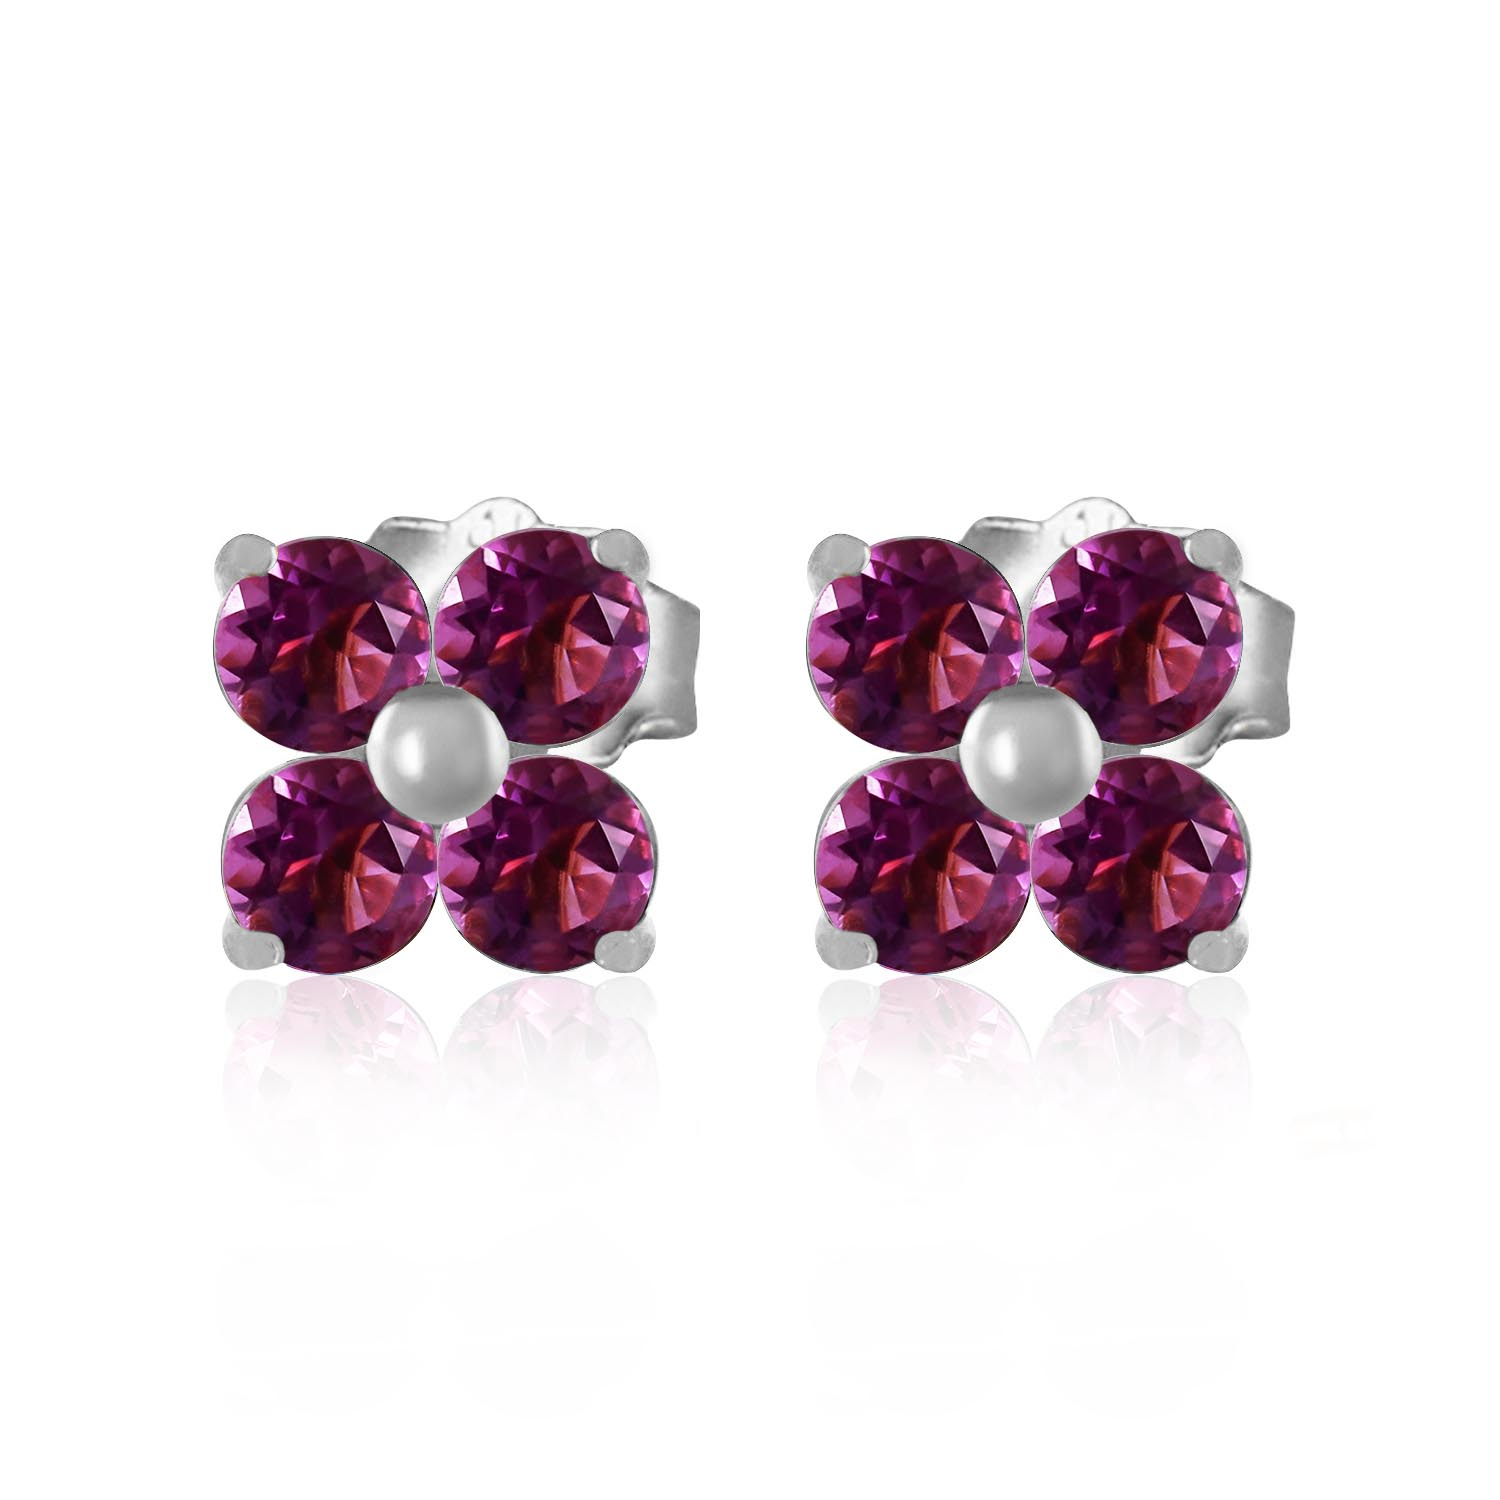 Amethyst Clover Stud Earrings 1.15ctw in 9ct White Gold